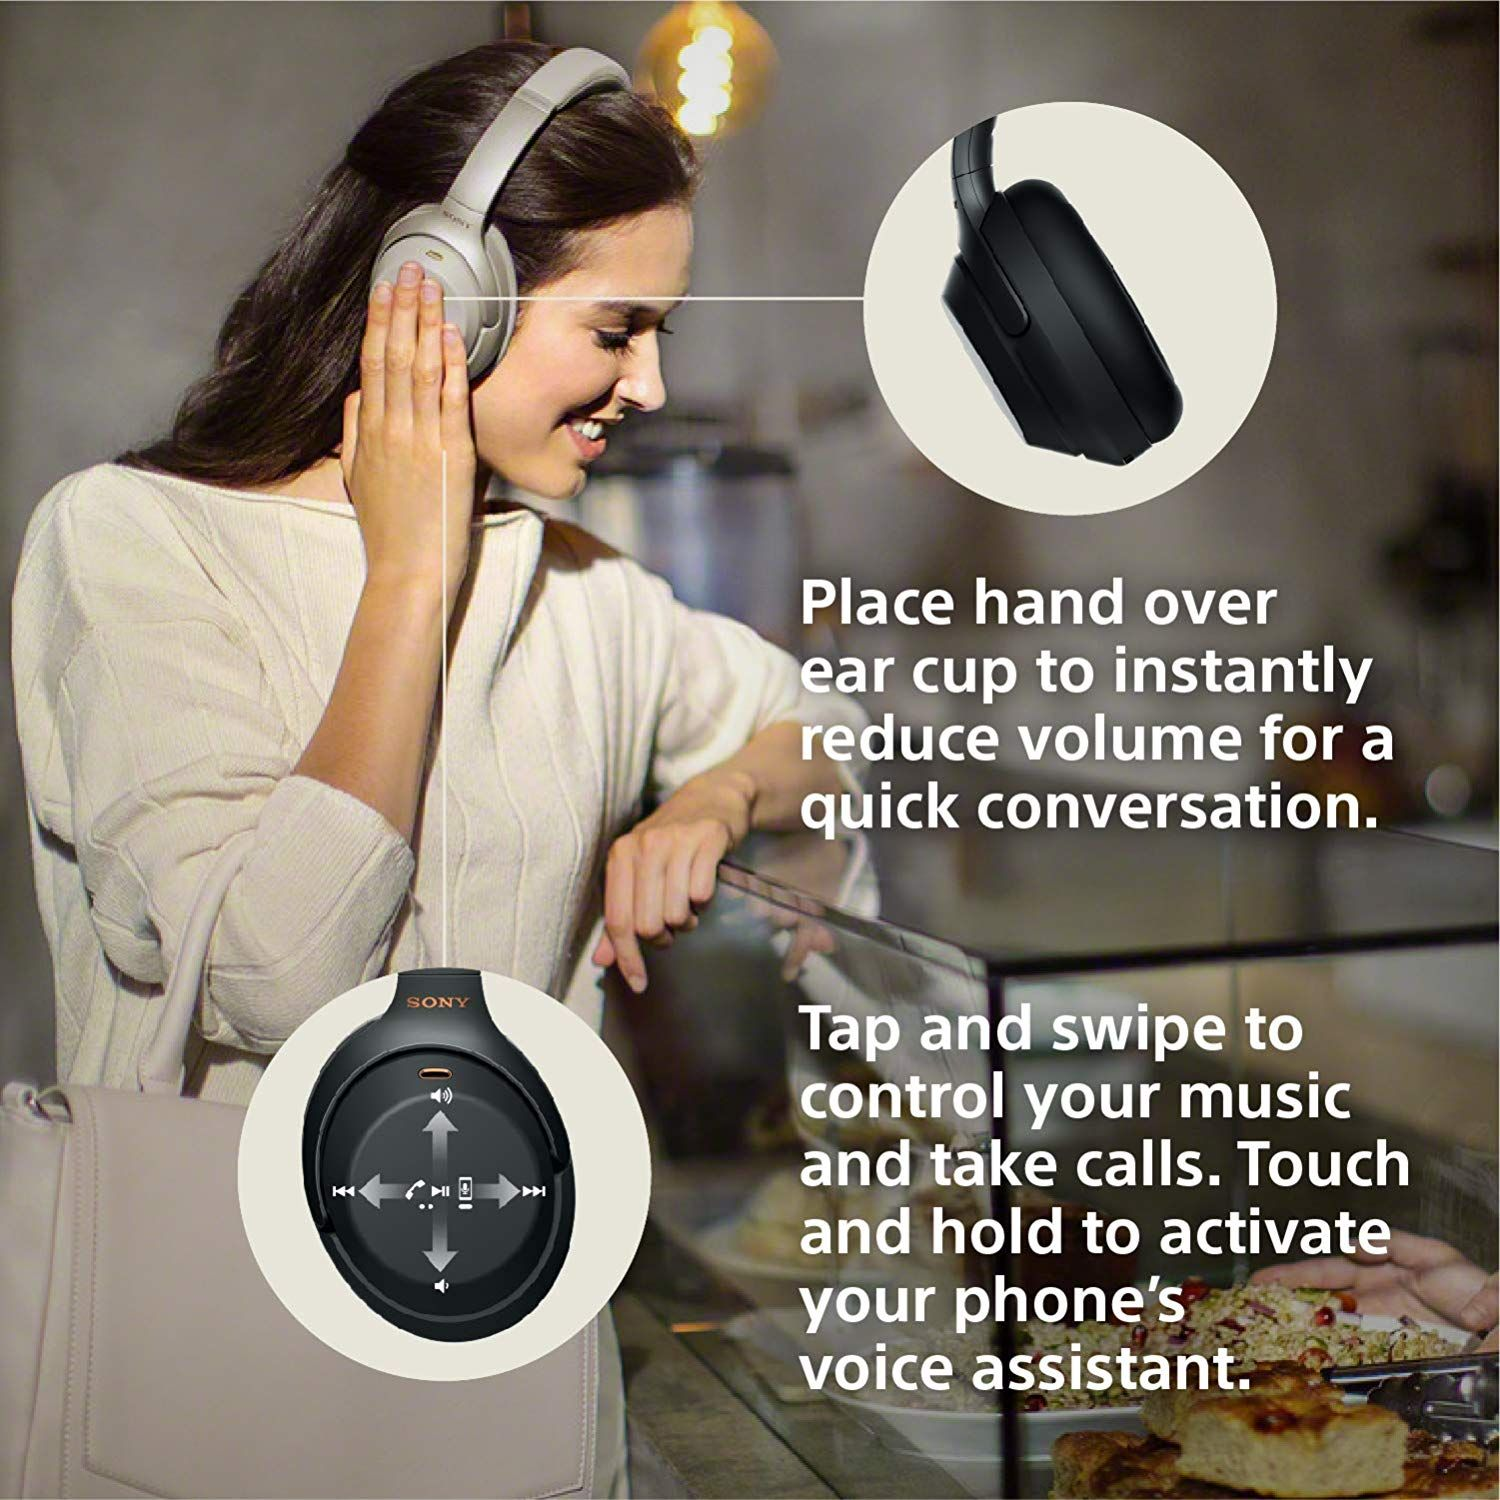 Sony Noise Cancelling Headphones Wh1000xm3 Wireless Bluetooth Over The Ear Headphones With Mic Noise Cancelling Headphones Noise Cancelling Alexa Voice